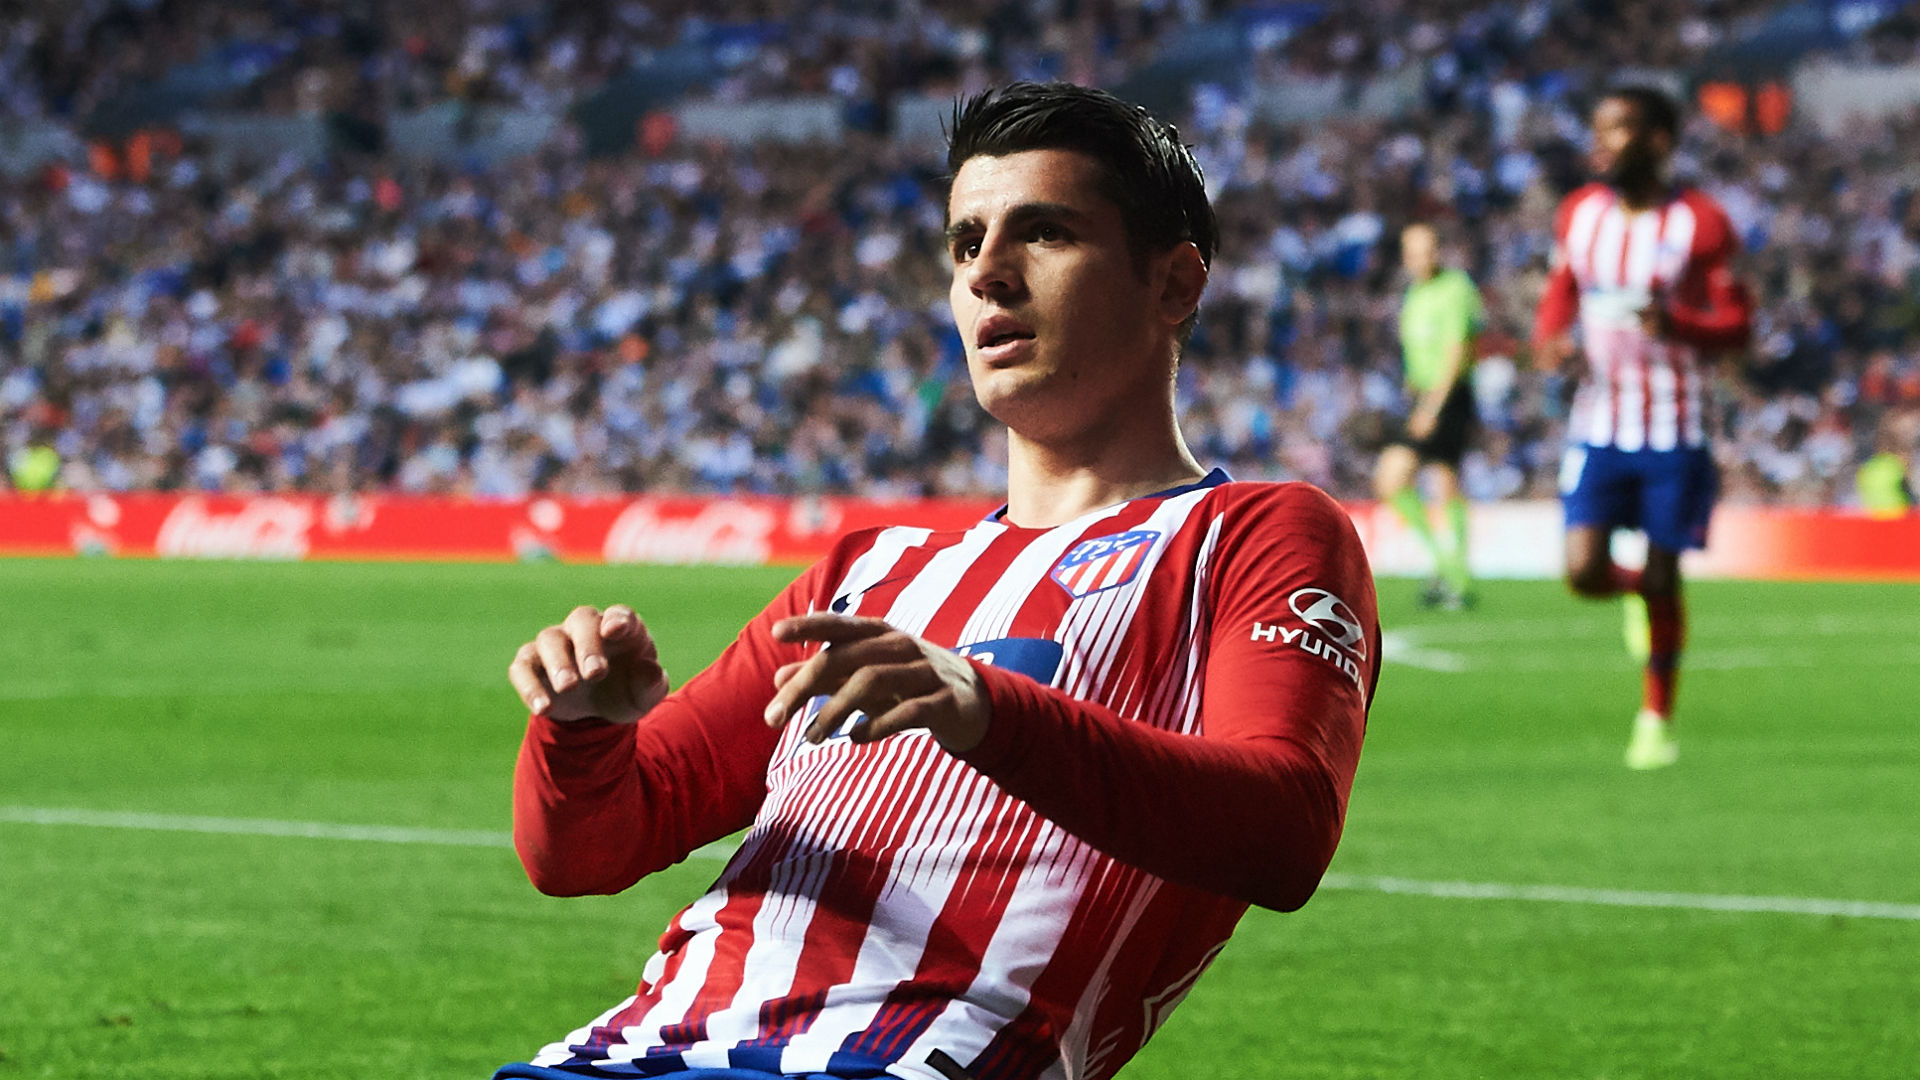 'Atletico move is the best thing that could have happened for me' - Morata reveals desire to succeed in Madrid